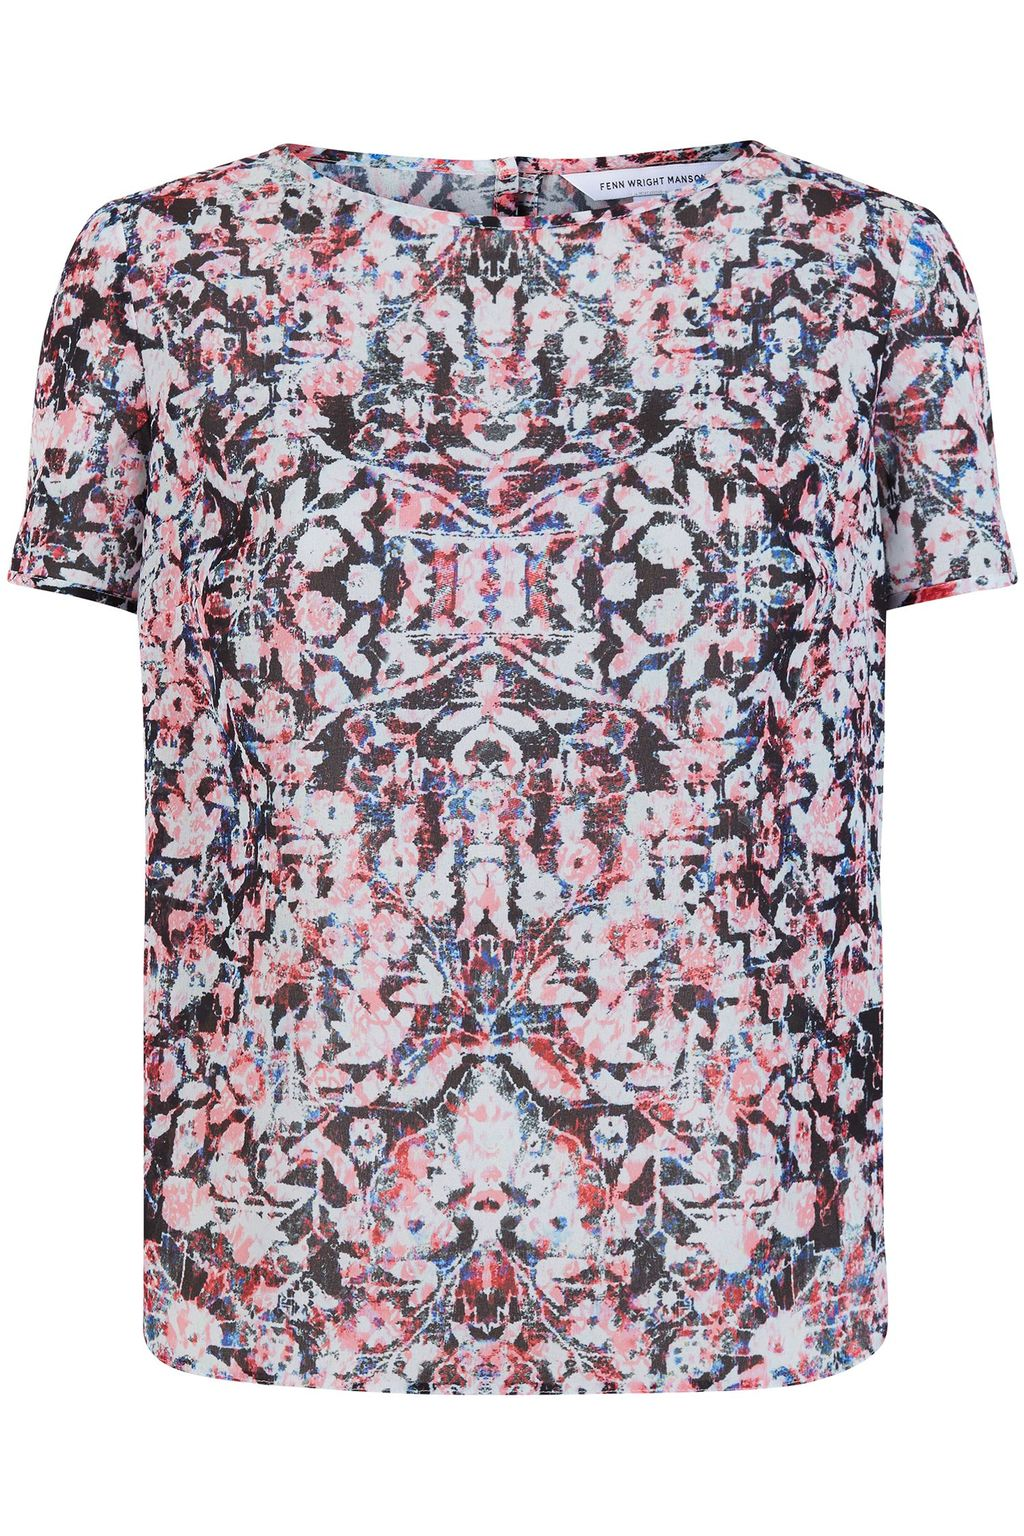 Hockney Top, Multi Coloured - predominant colour: blush; occasions: casual; length: standard; style: top; fibres: polyester/polyamide - 100%; fit: body skimming; neckline: crew; sleeve length: short sleeve; sleeve style: standard; pattern type: fabric; pattern size: light/subtle; pattern: patterned/print; texture group: woven light midweight; multicoloured: multicoloured; season: s/s 2016; wardrobe: highlight